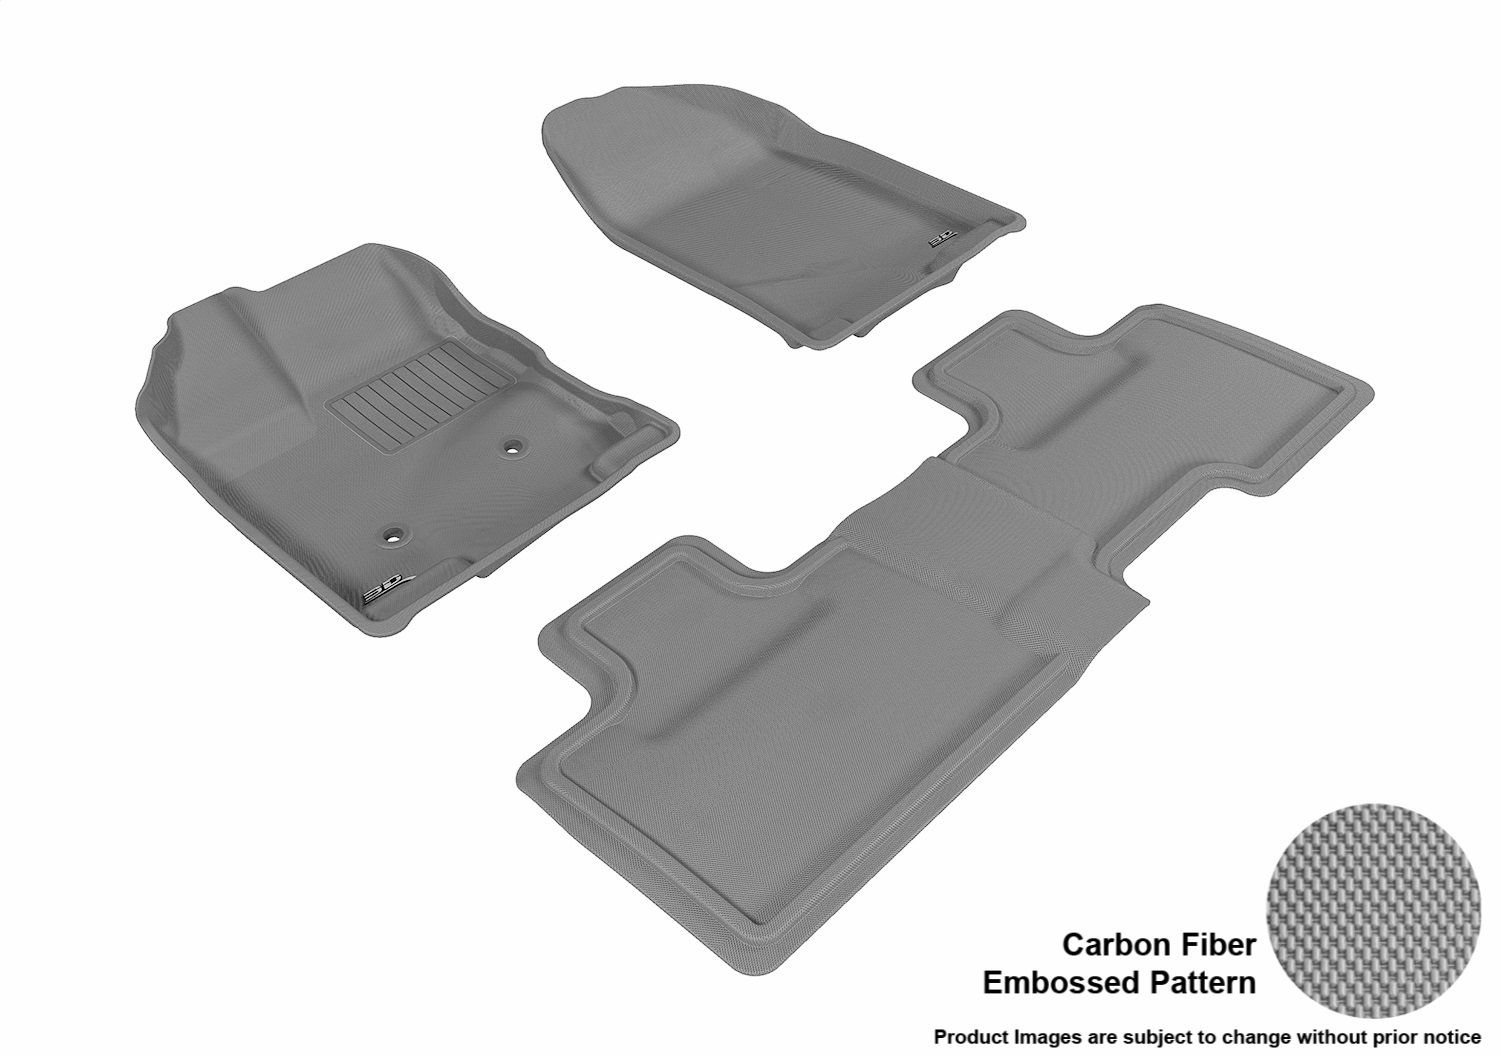 Black L1FR02021509 Kagu Rubber 3D MAXpider Second Row Custom Fit All-Weather Floor Mat for Select Ford Edge Models